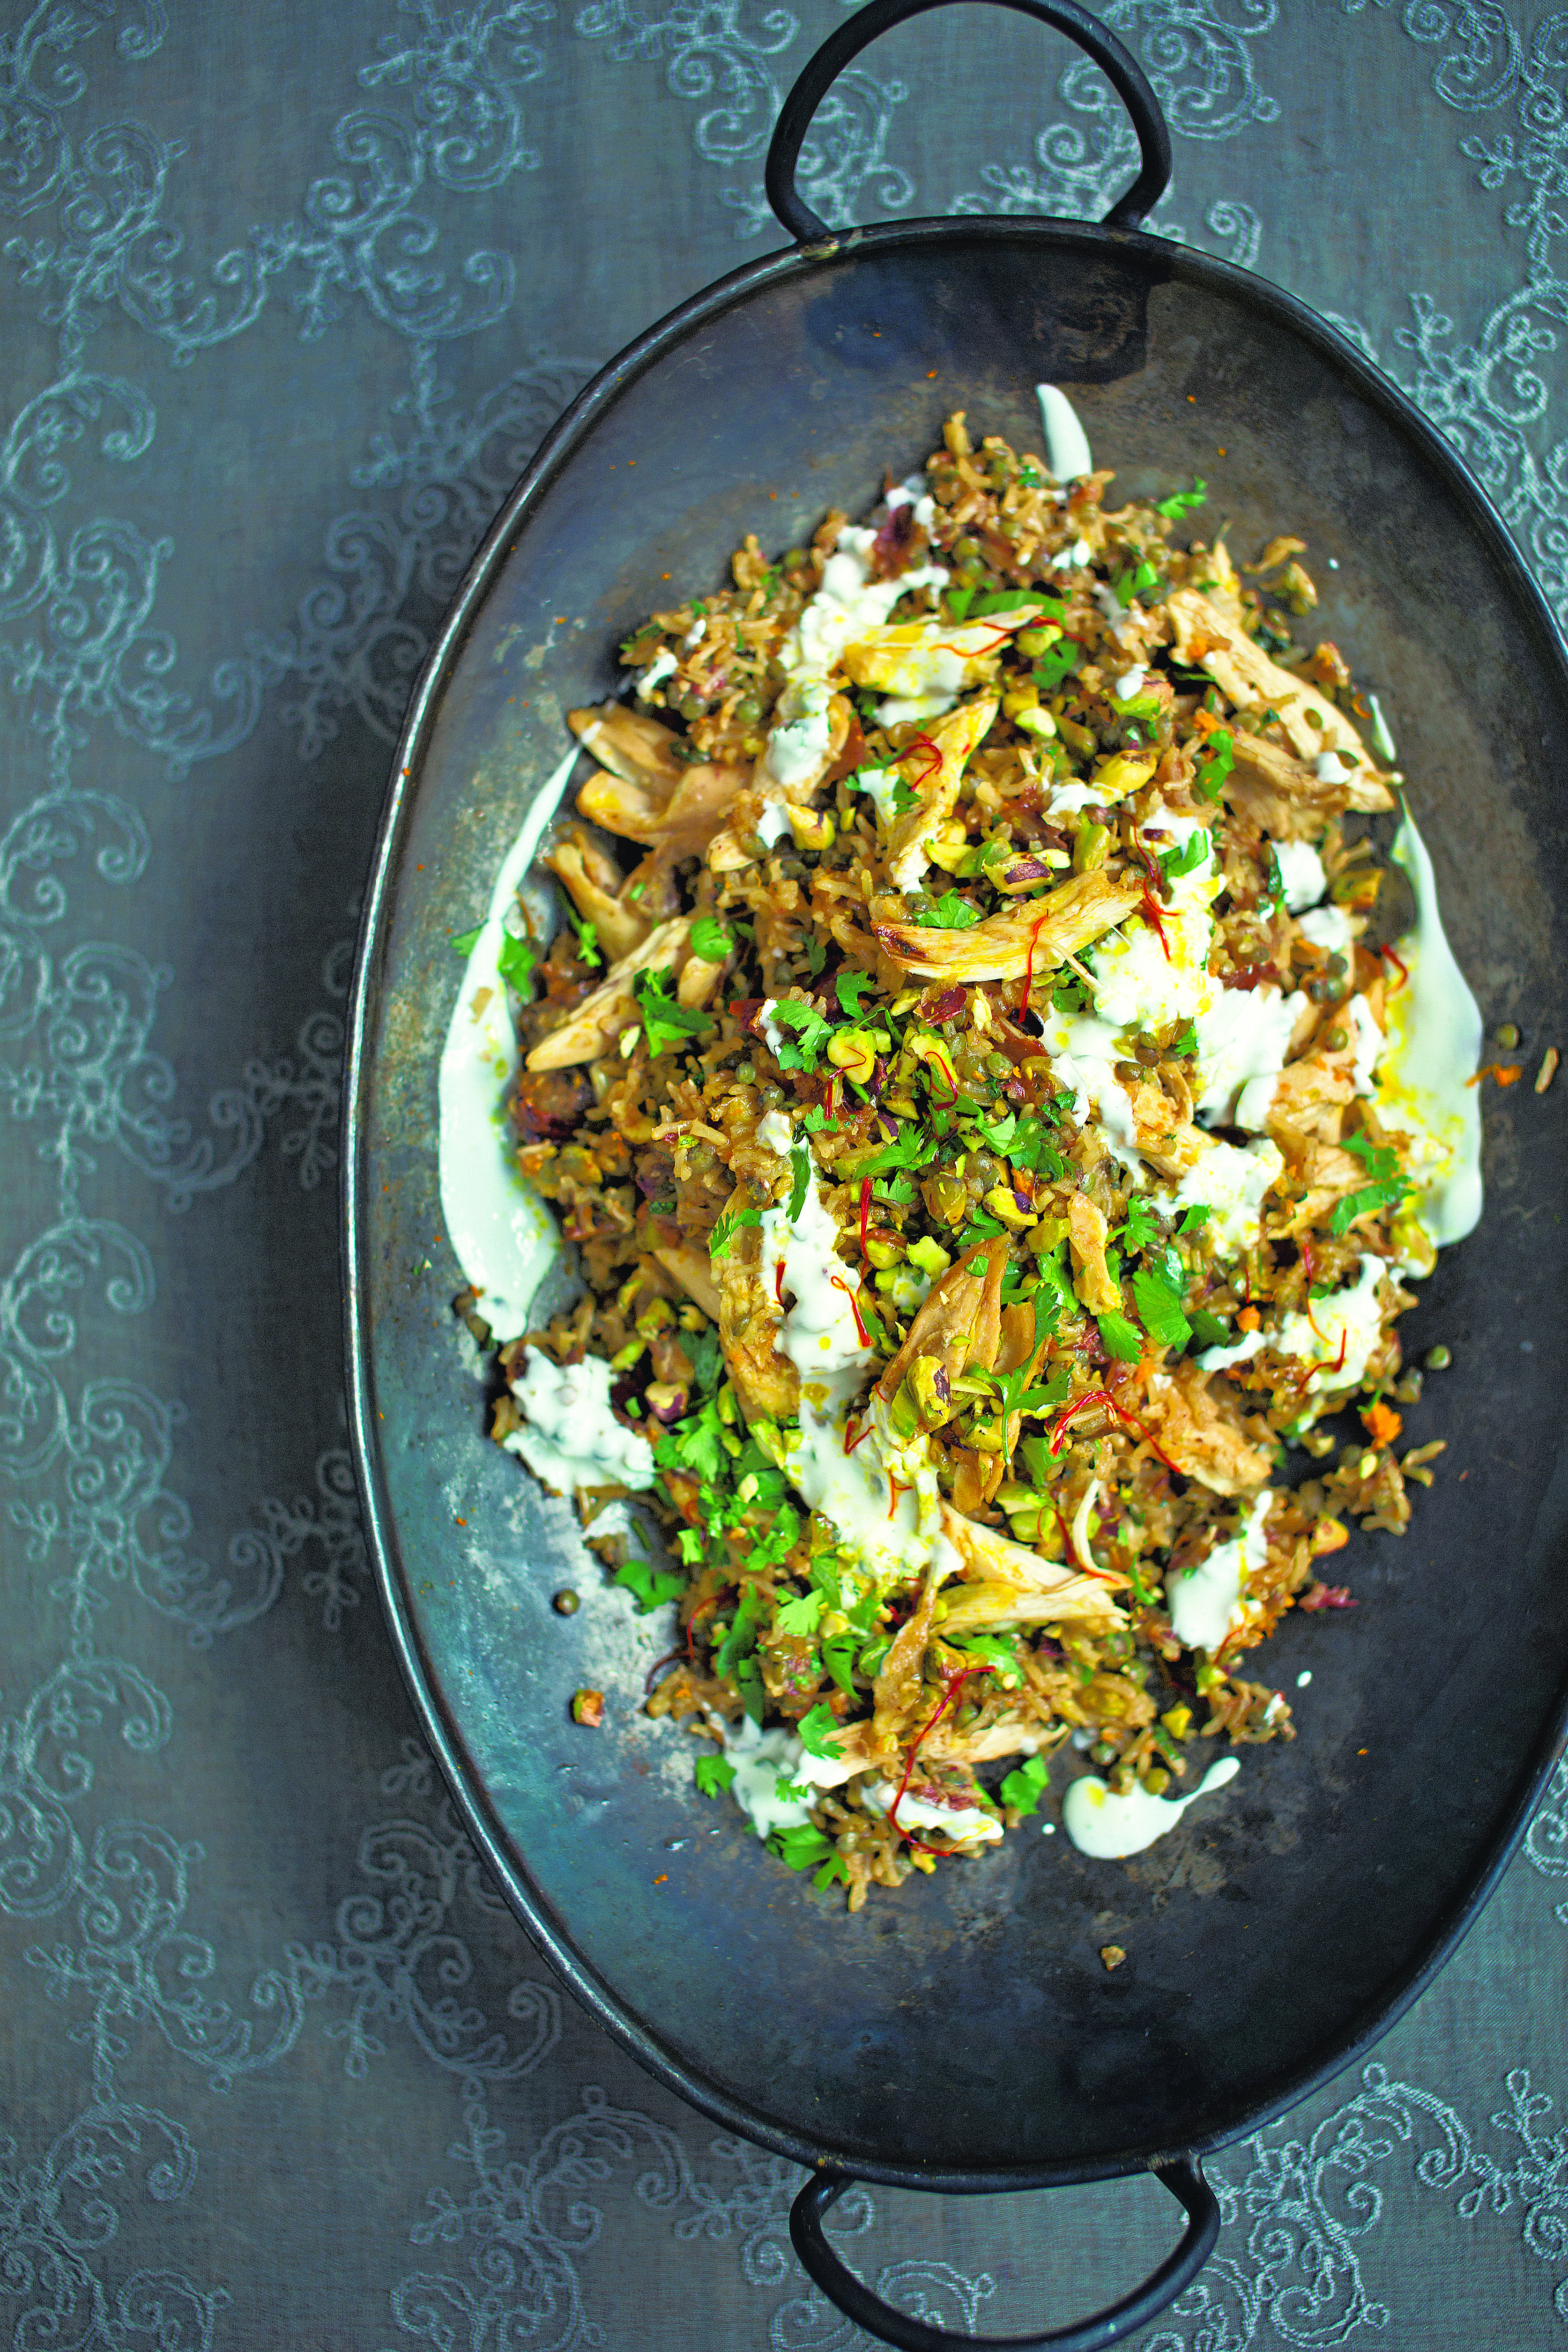 Chicken, date and lentil brown rice pilaf with saffron butter